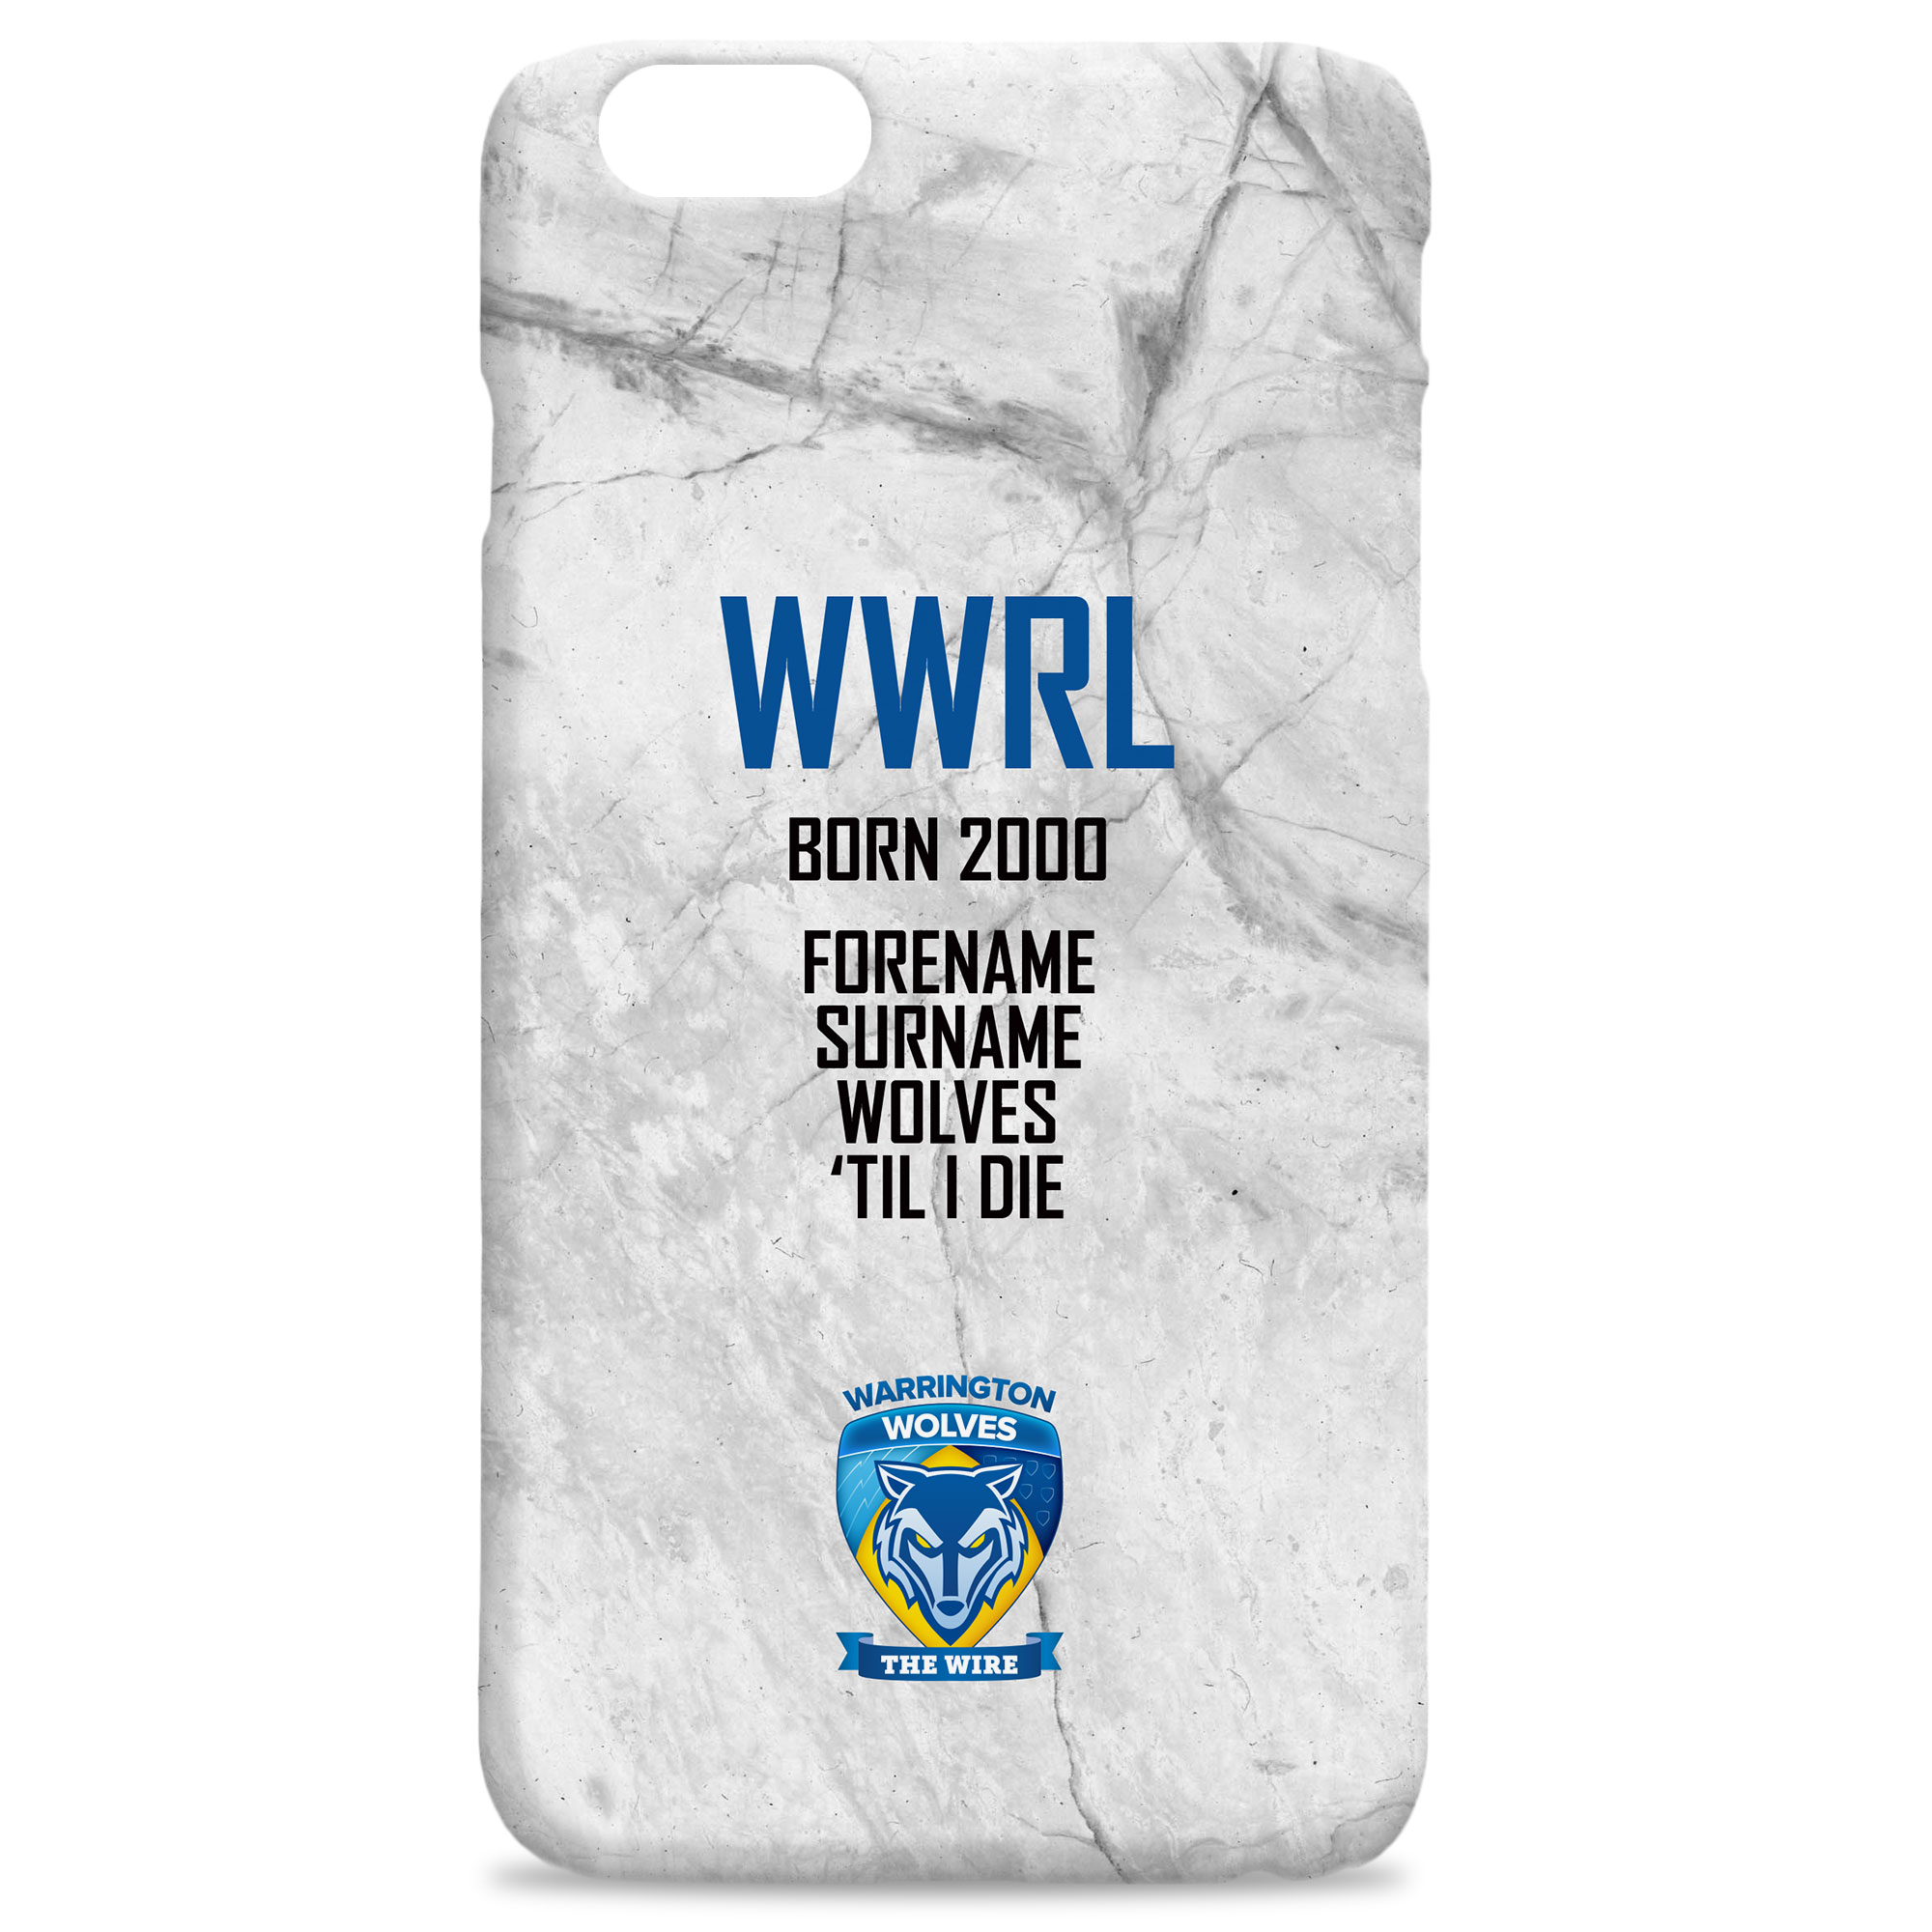 Warrington Wolves 'Til I Die Hard Back Phone Case